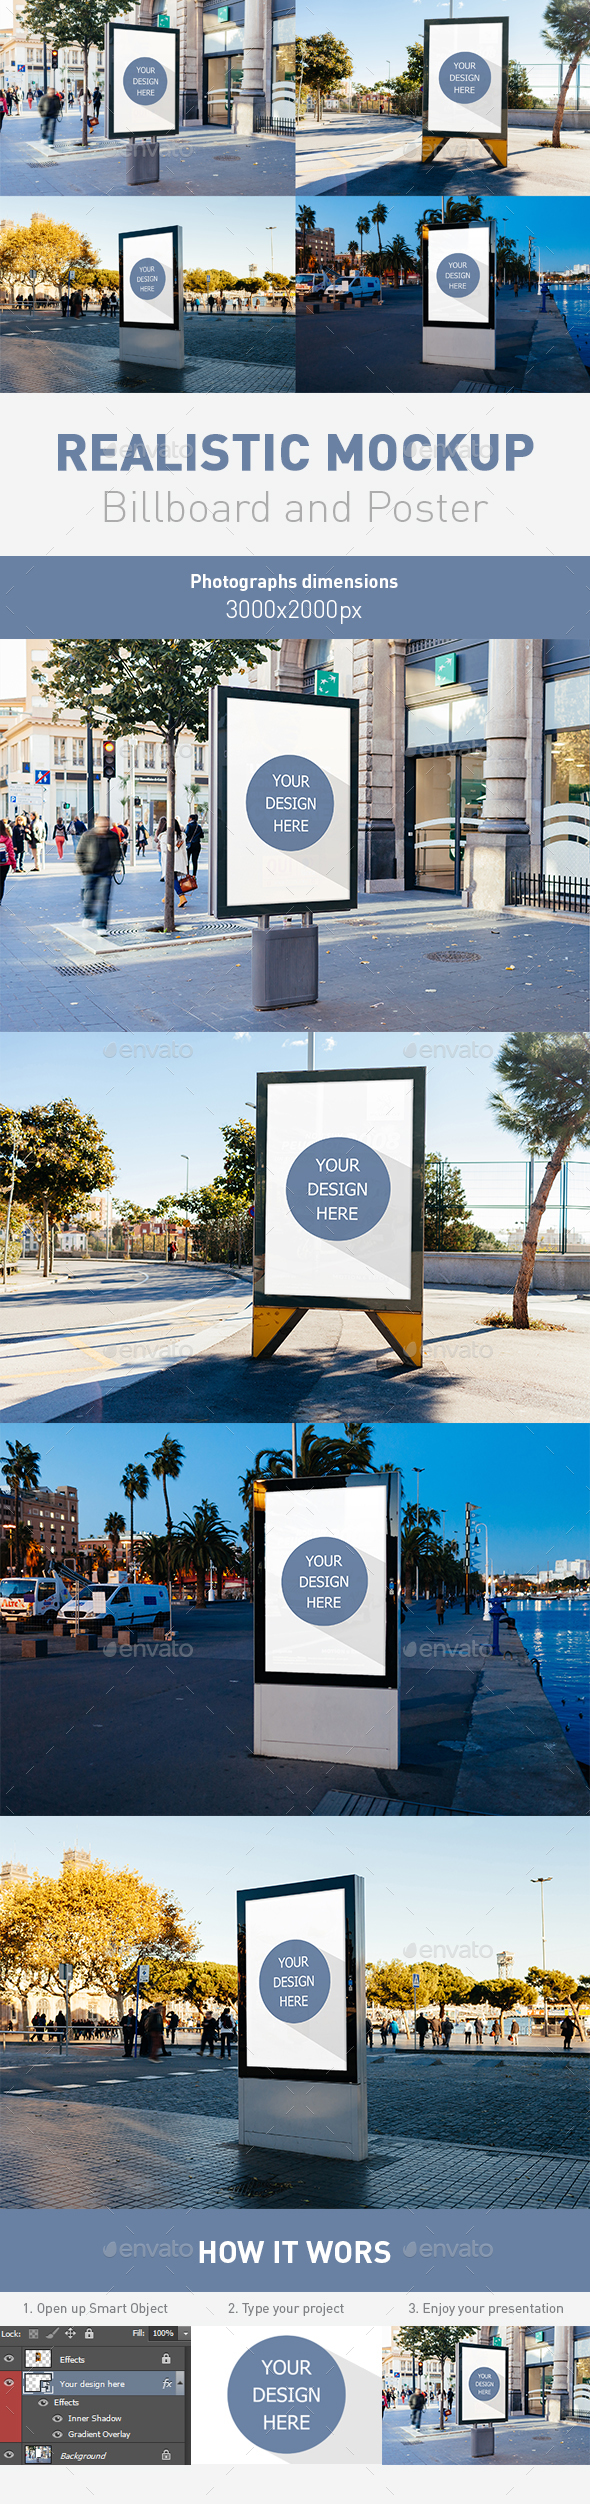 4 Realistic Billboard and Poster Mockup - Product Mock-Ups Graphics